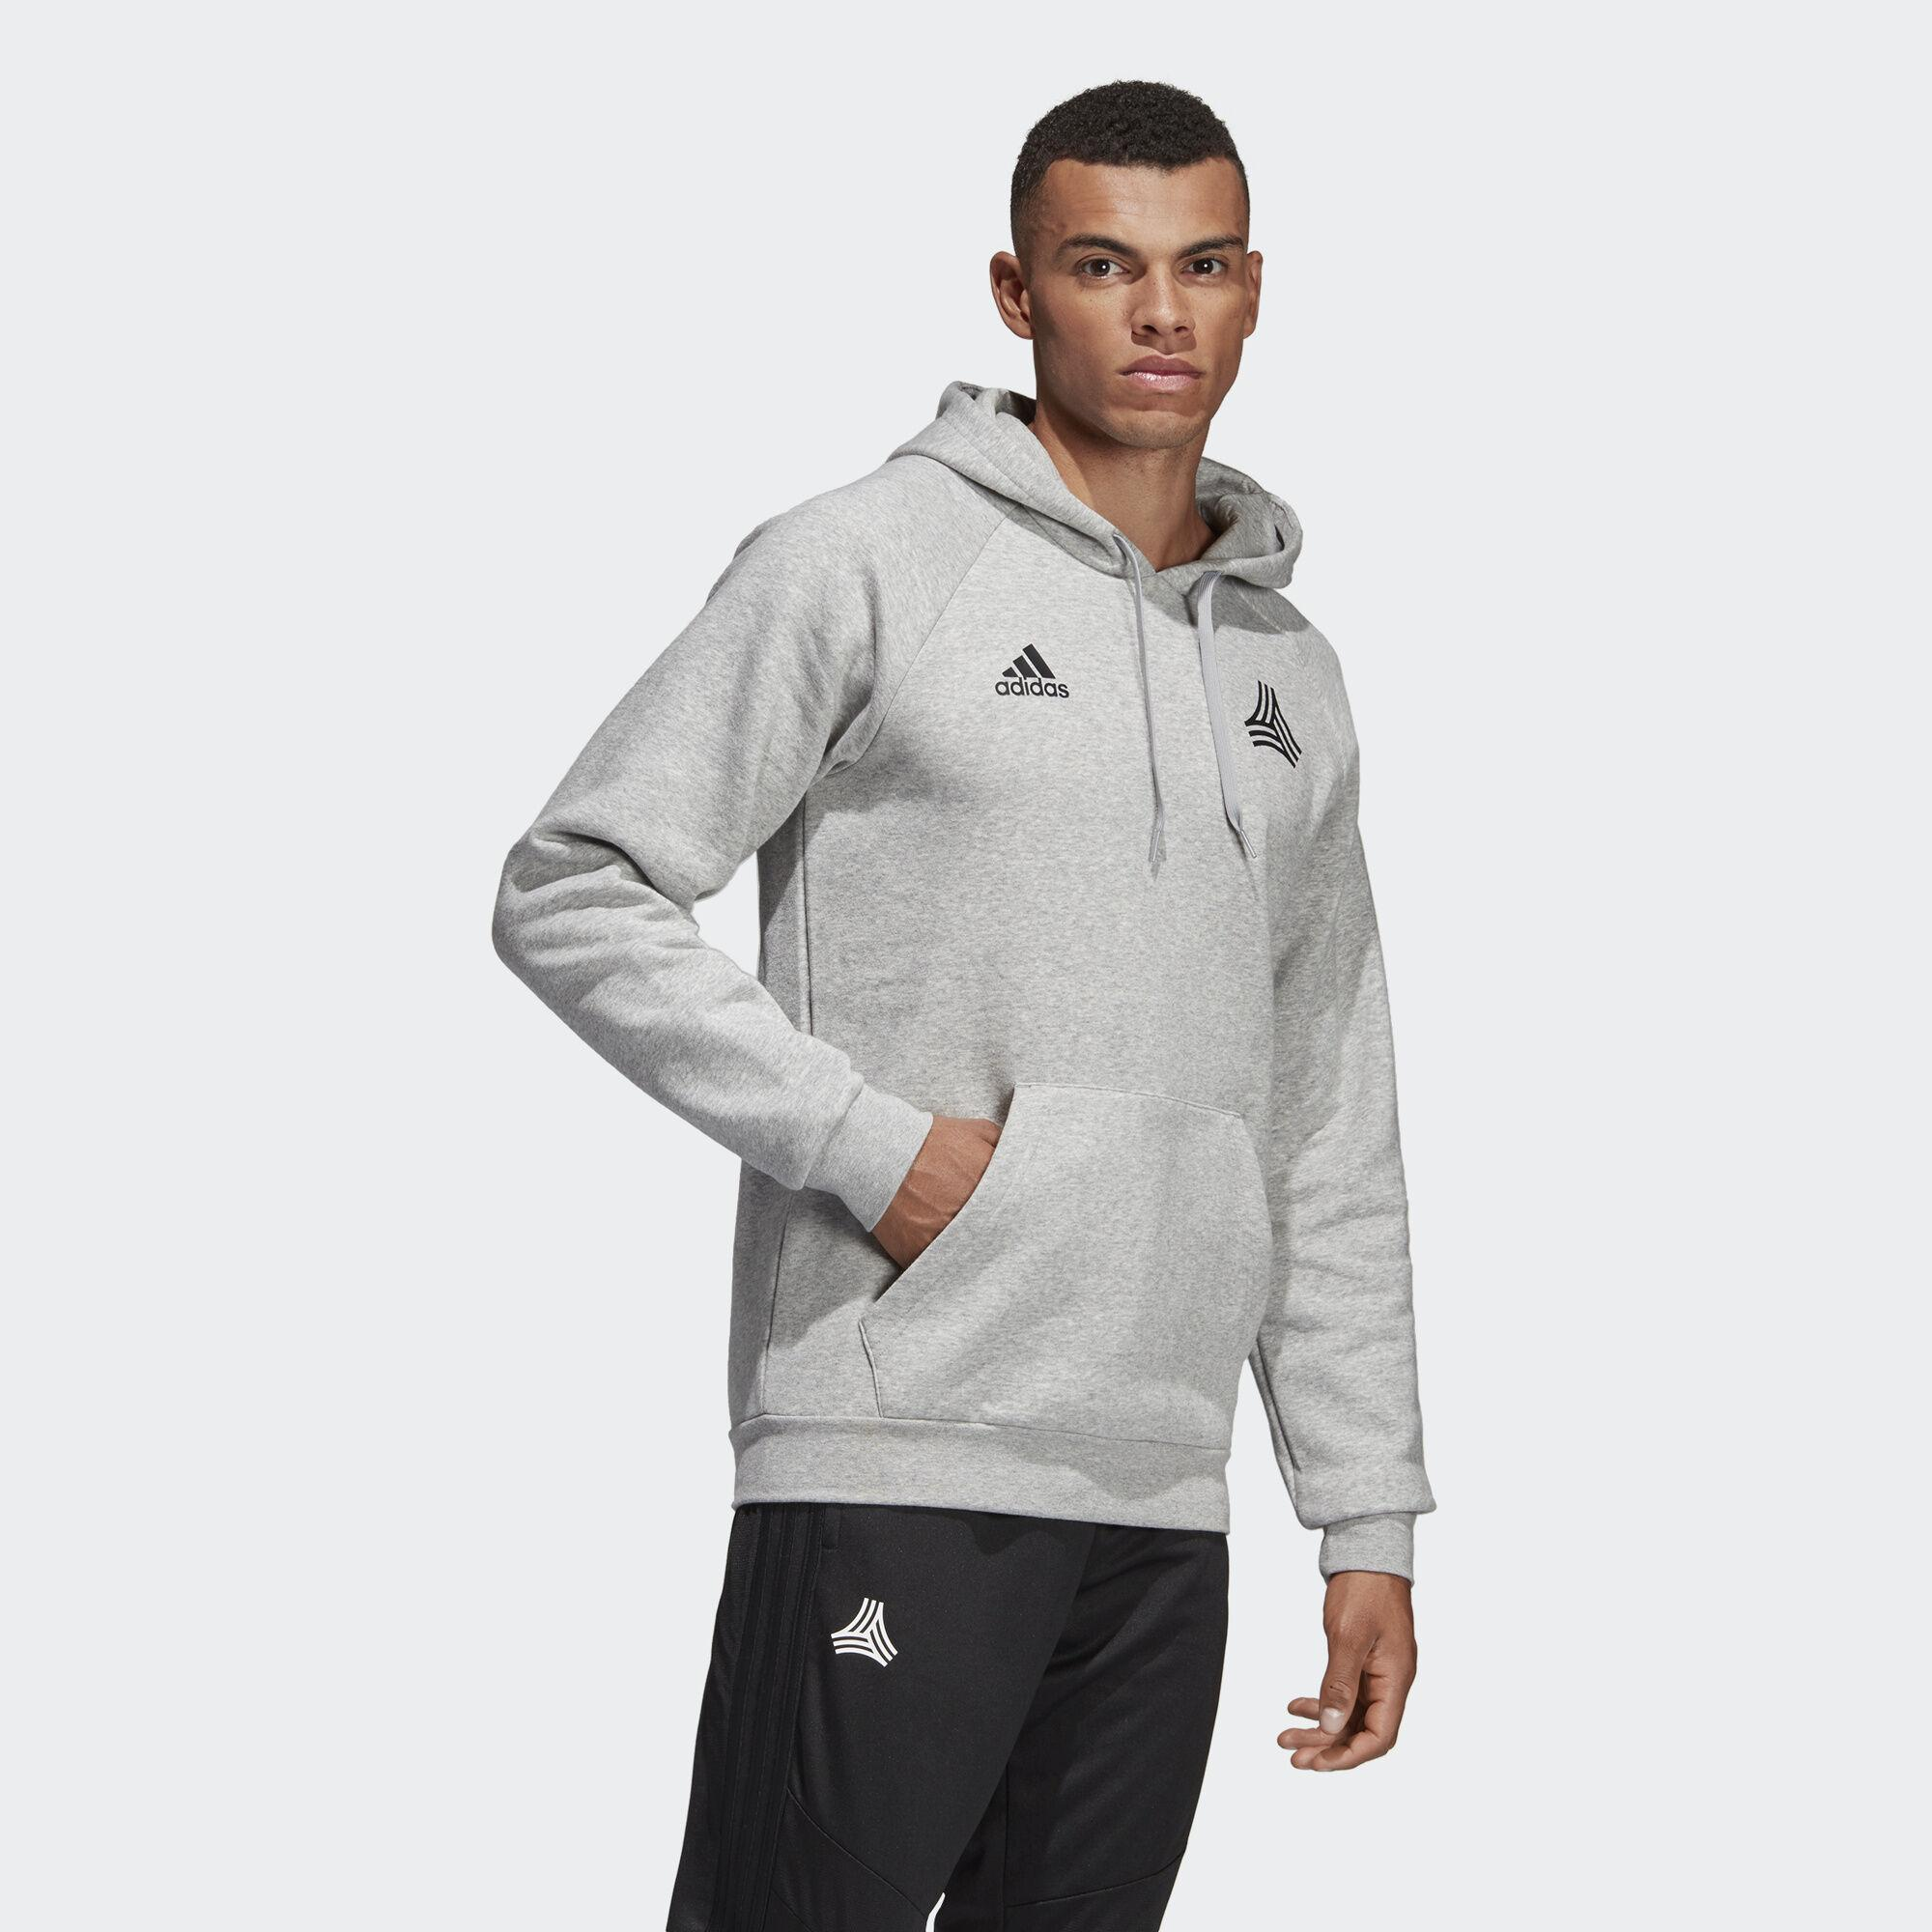 adidas Cotton Tan Graphic Hooded Sweatshirt in Gray for Men